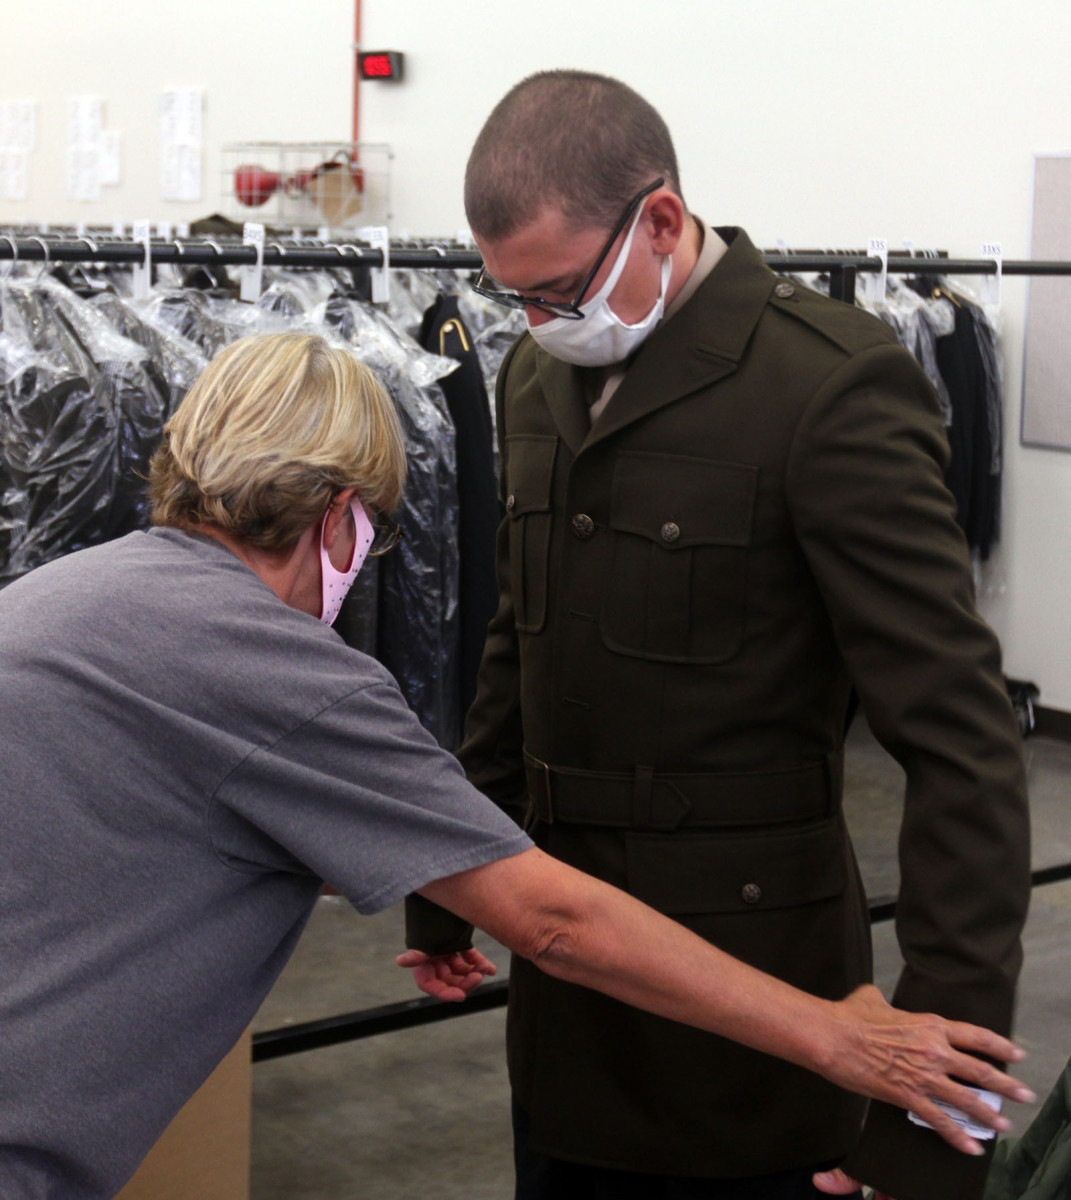 Donna Smith, supervisor of the Clothing Initial Issue Point inside Vessey Hall, gets Pvt. Andrew Fraughton of A Battery, 1st Battalion, 79th Field Artillery fitted for the jacket of the Army Green Service Uniform Oct. 14, 2020.